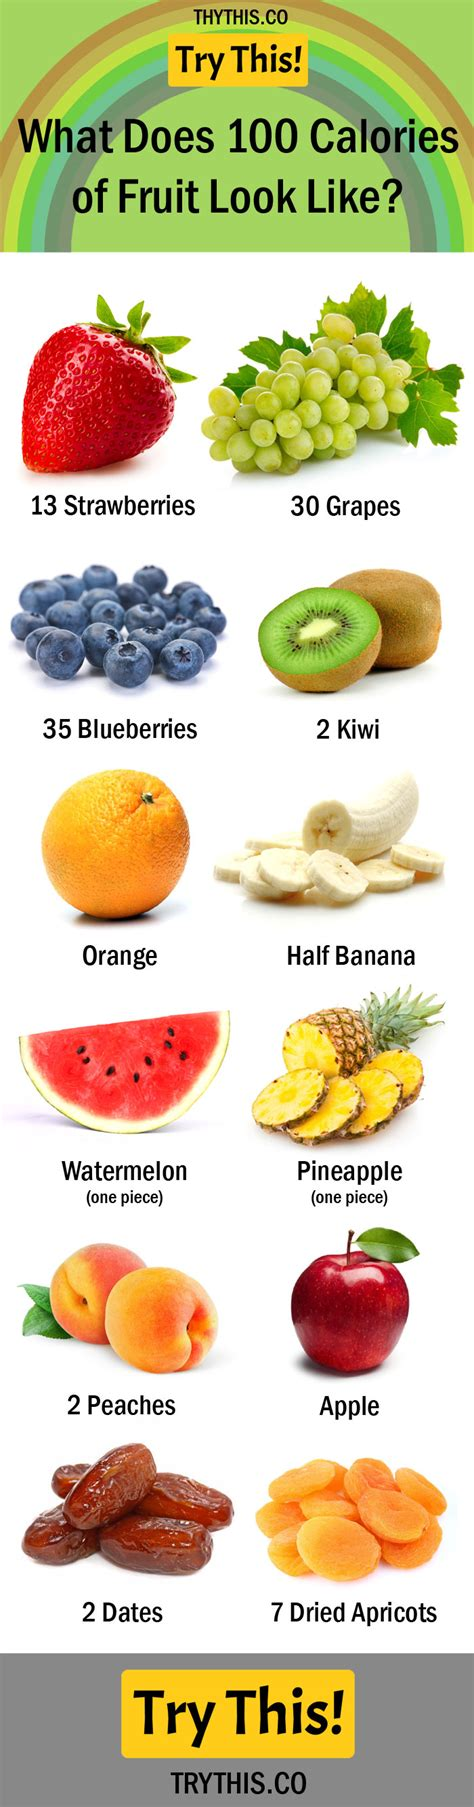 vegetables 100 calories what does 100 calories look like food tips trythis